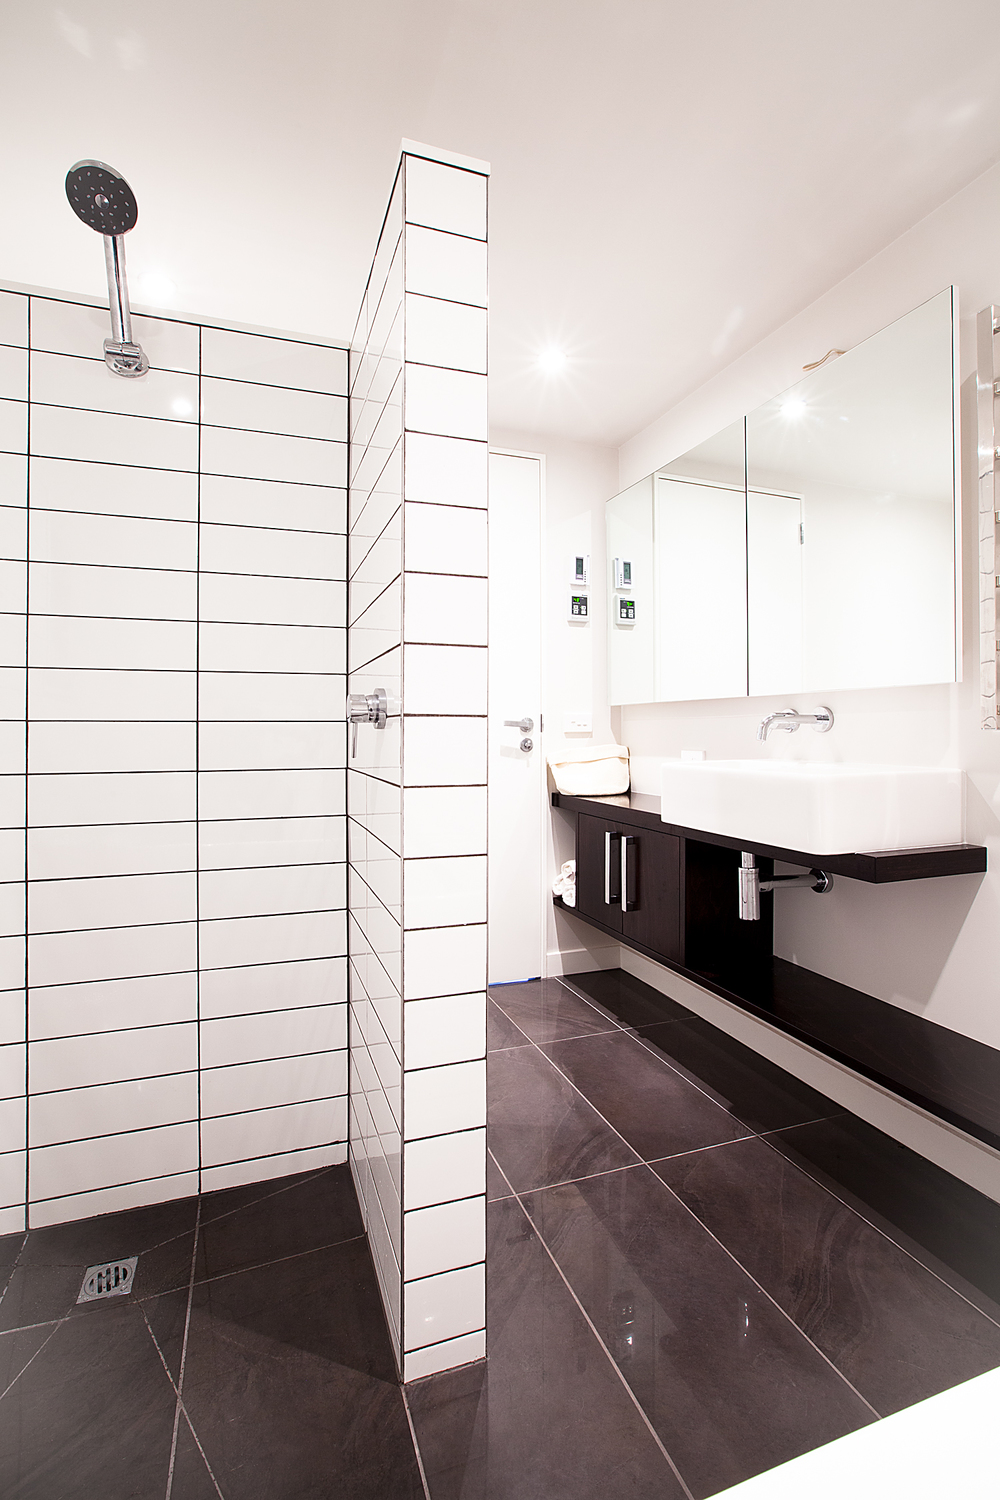 Wadestown bathroom renovation by Mandel Contracting. Photo by Phillip Merry